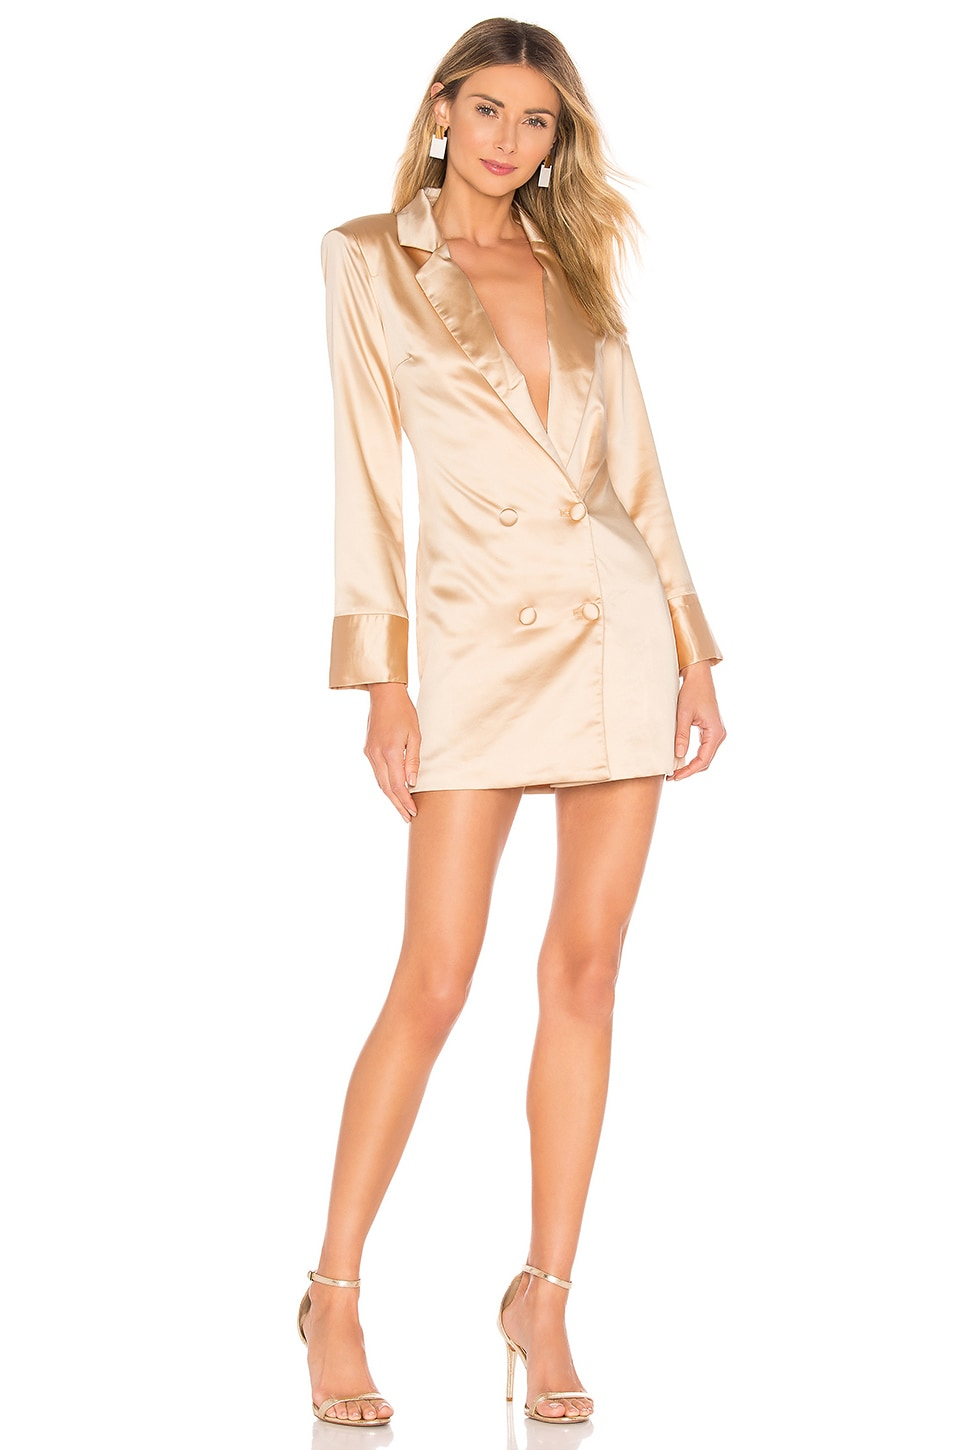 About Us Alix Blazer Dress in Champagne